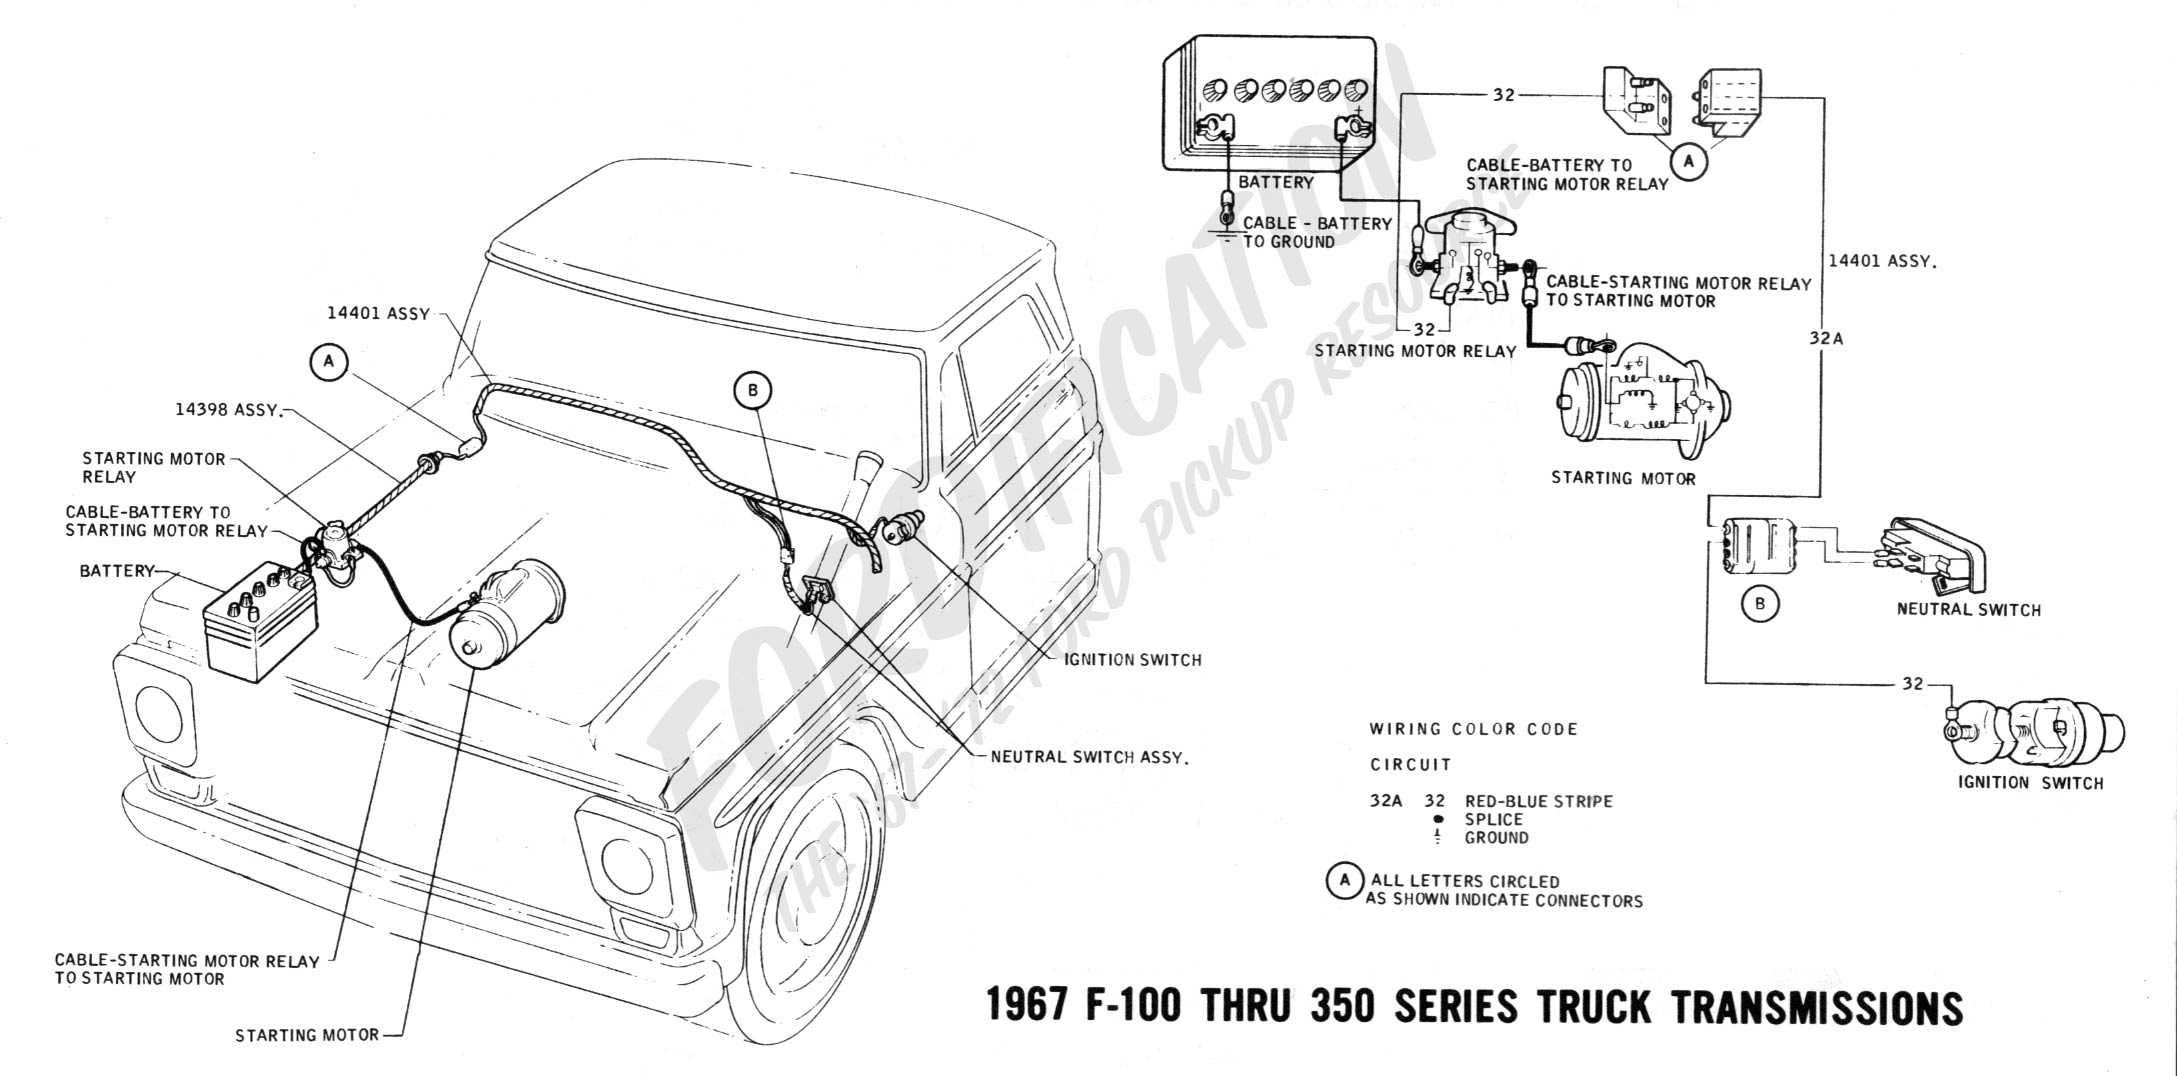 wiring 1967trucktranny ford truck technical drawings and schematics section h wiring Ford F-250 Wiring Diagram at mifinder.co